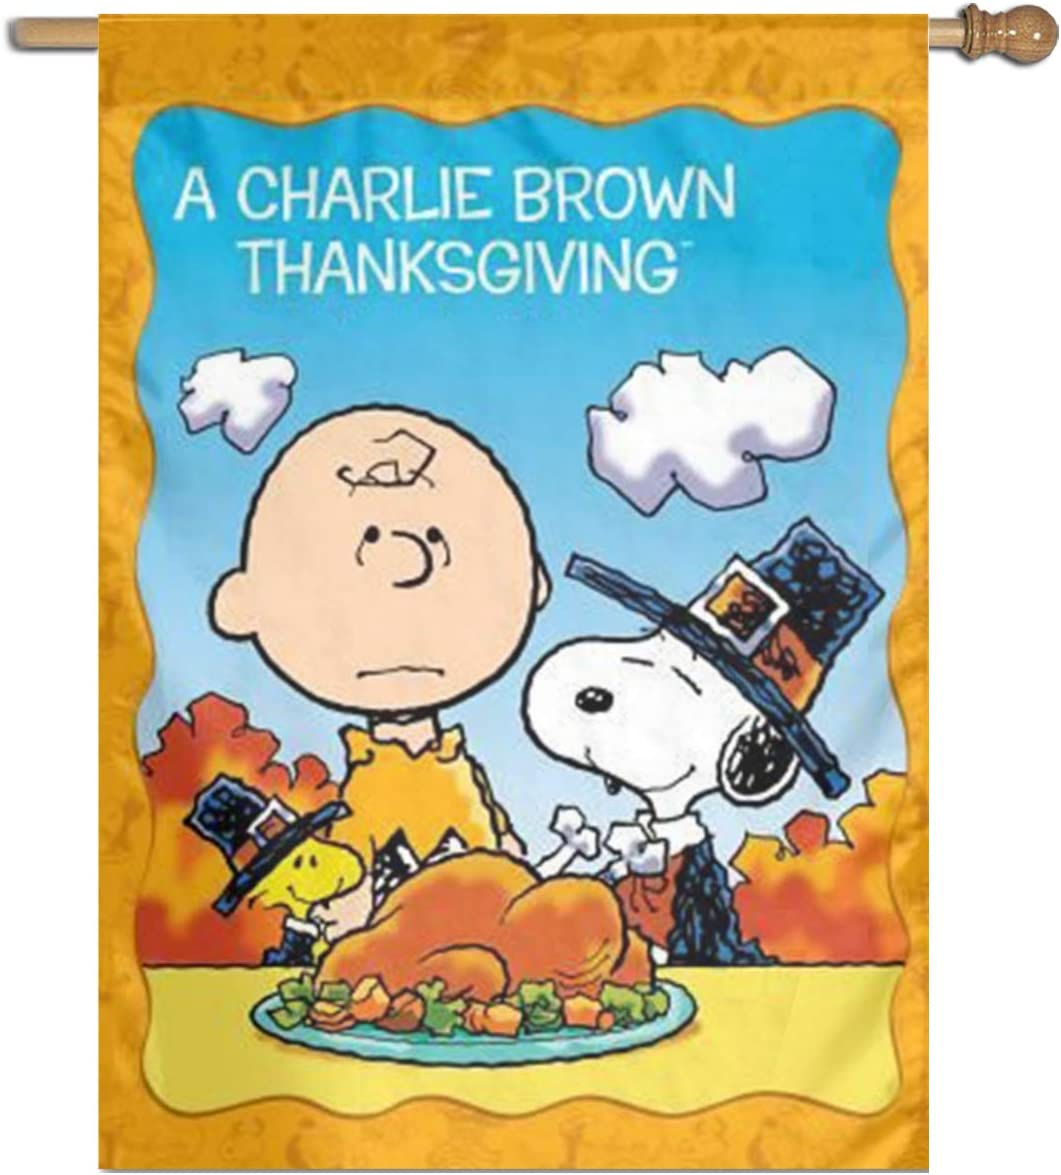 WOMFUI Snoopy and Charlie Brown Christmas Garden Flag Unique Decoration Outdoor Flag (12.5×18, Snoopy Charlie Brown Thanksgiving)